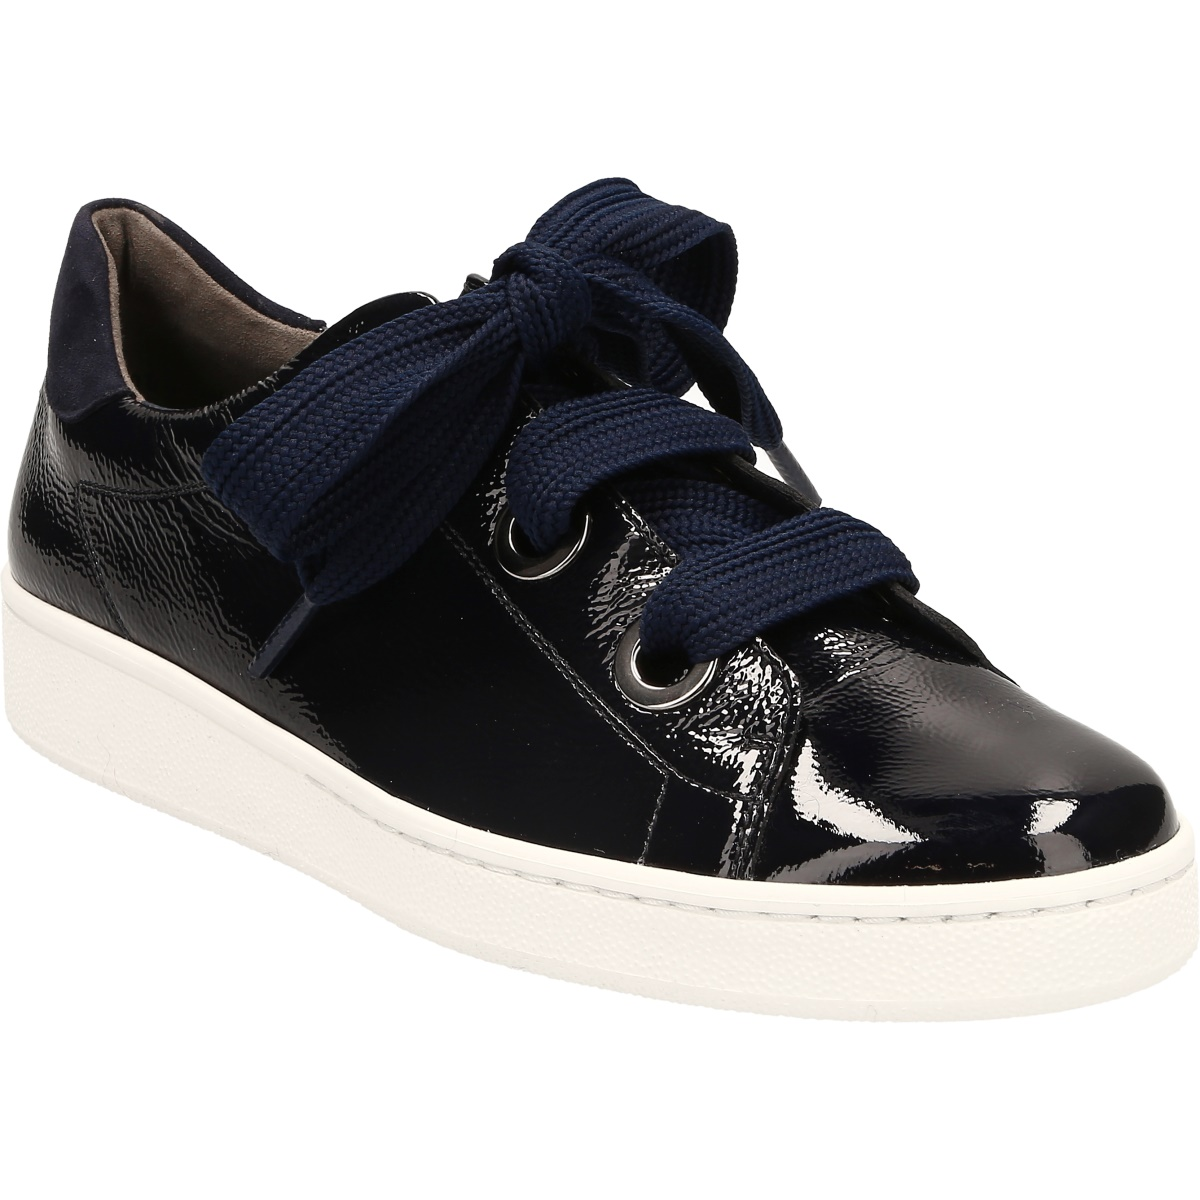 Paul Green 4539 273 Women's shoes Lace ups buy shoes at our